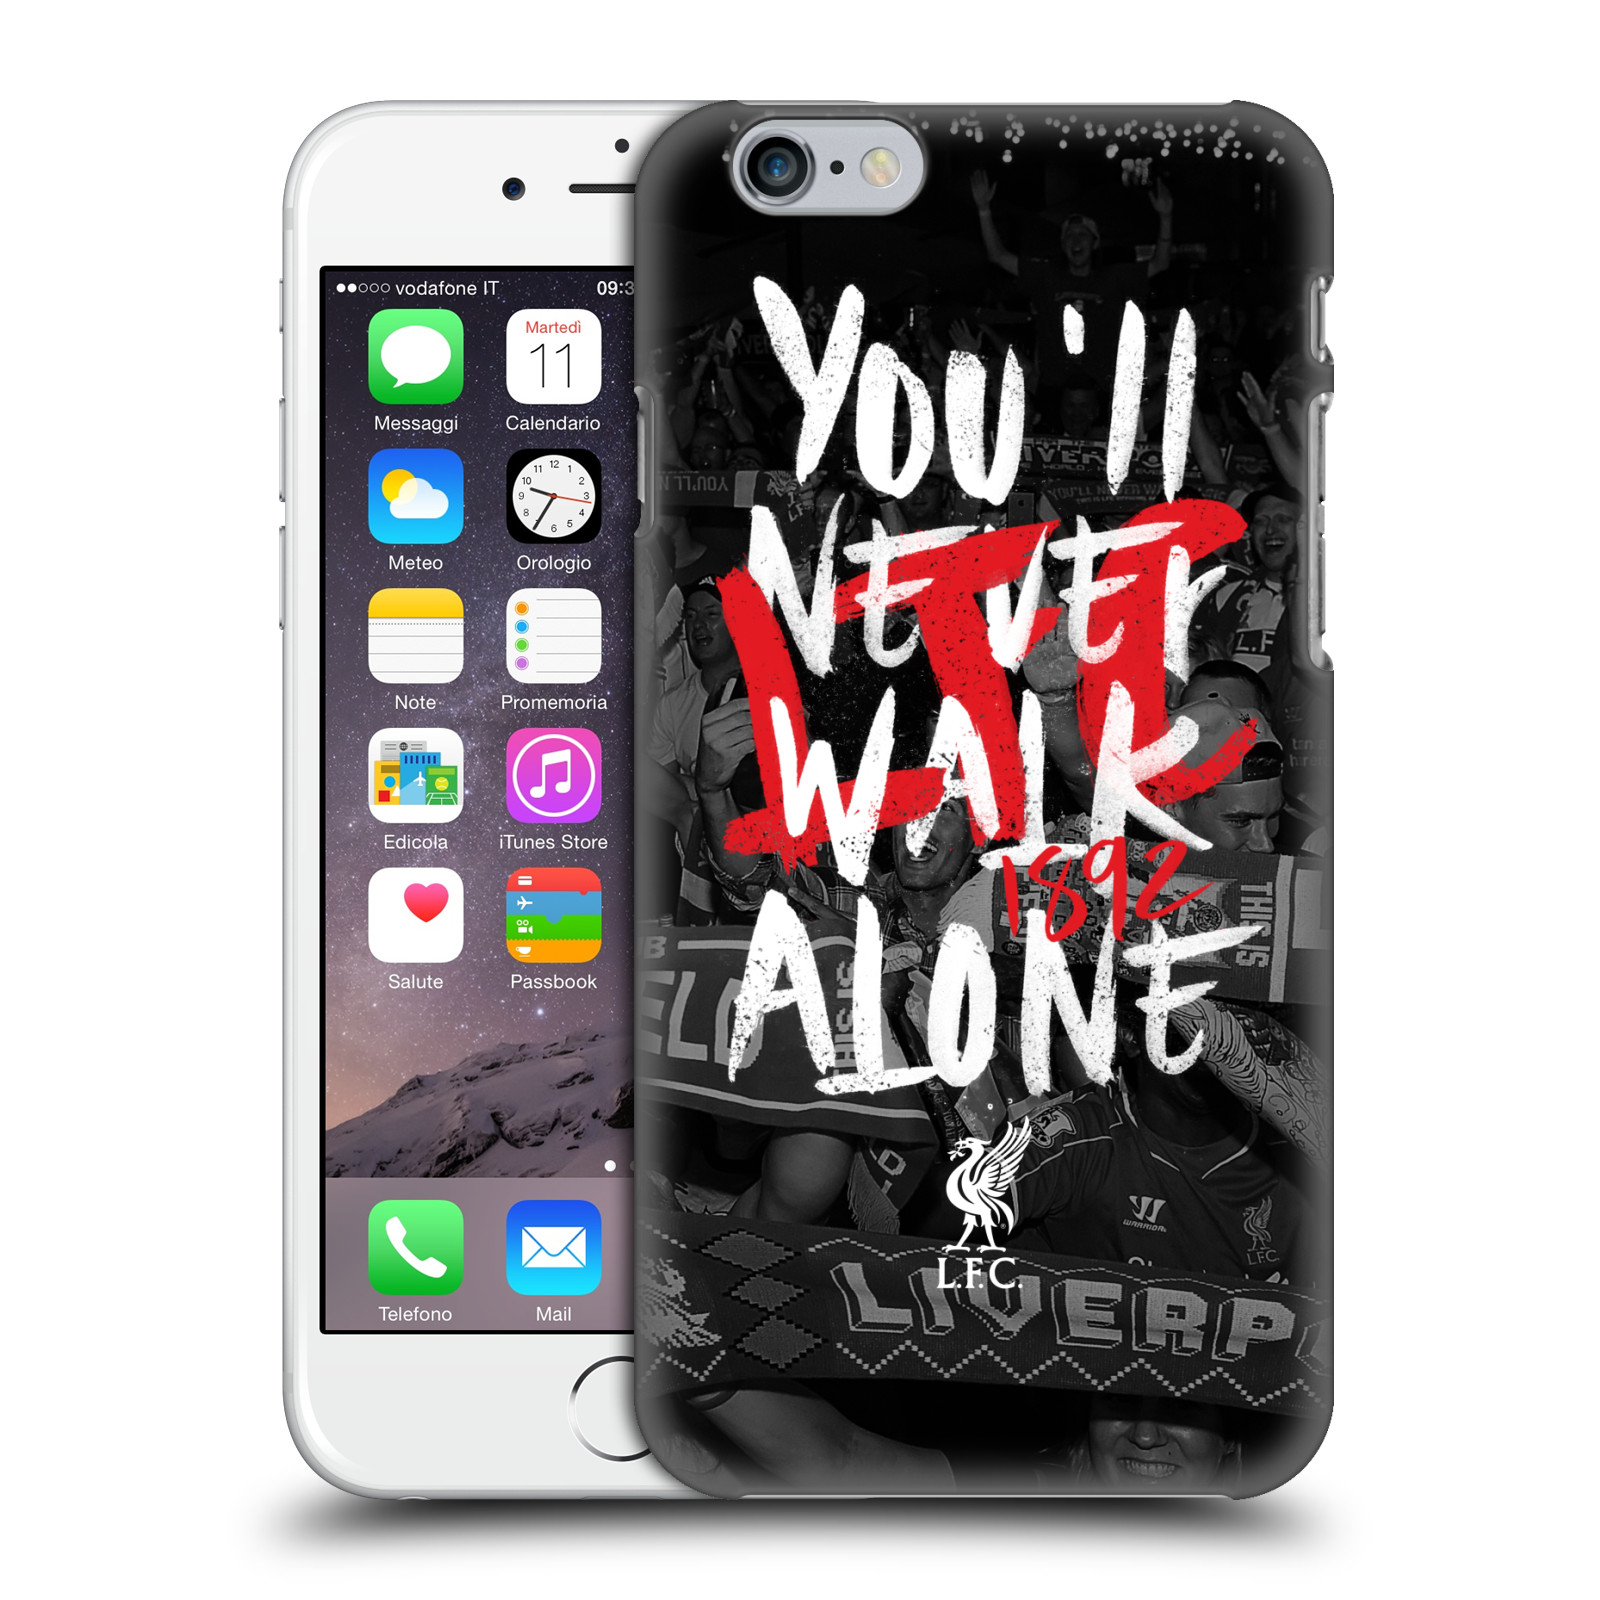 Liverpool FC LFC You'll Never Walk Alone-Kop 6